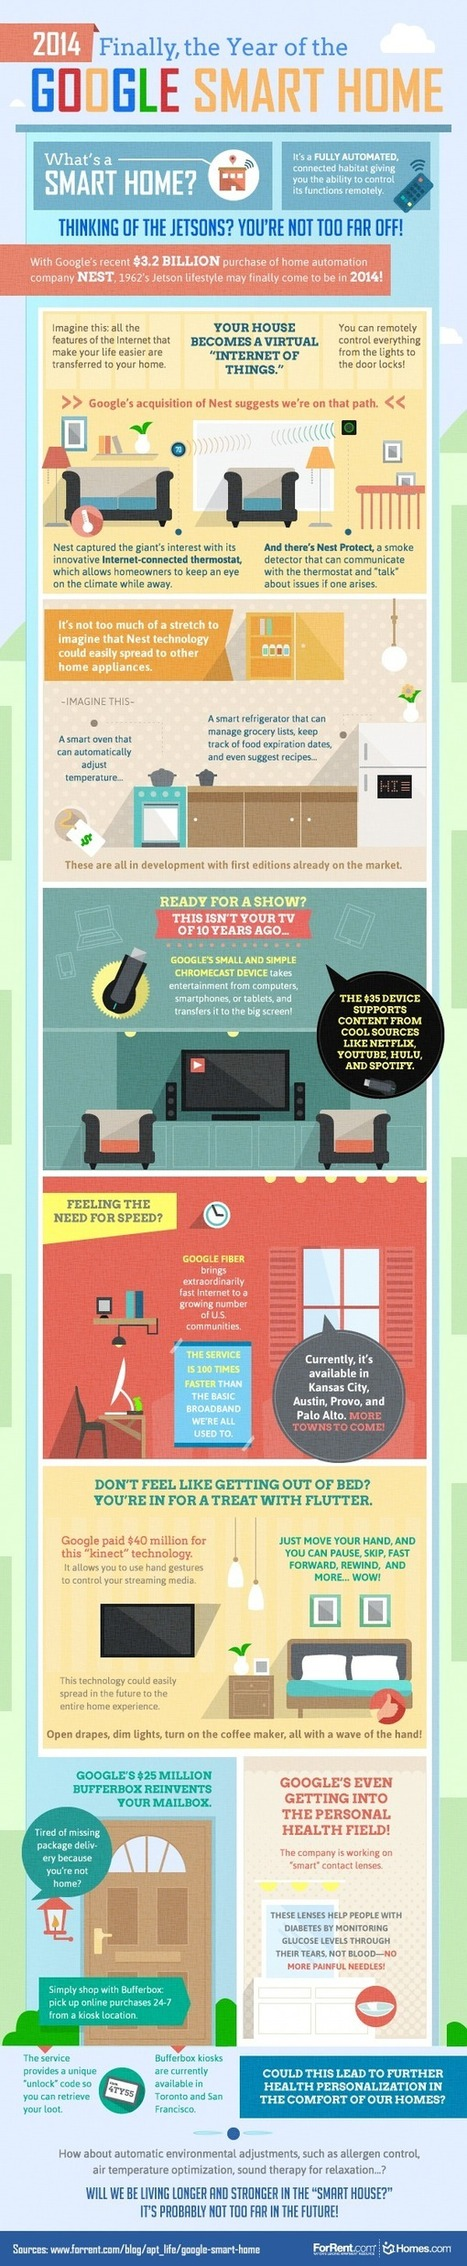 2014: The Year of the Google Smart Home #Infographic - Search Engine Journal | SEO | Scoop.it